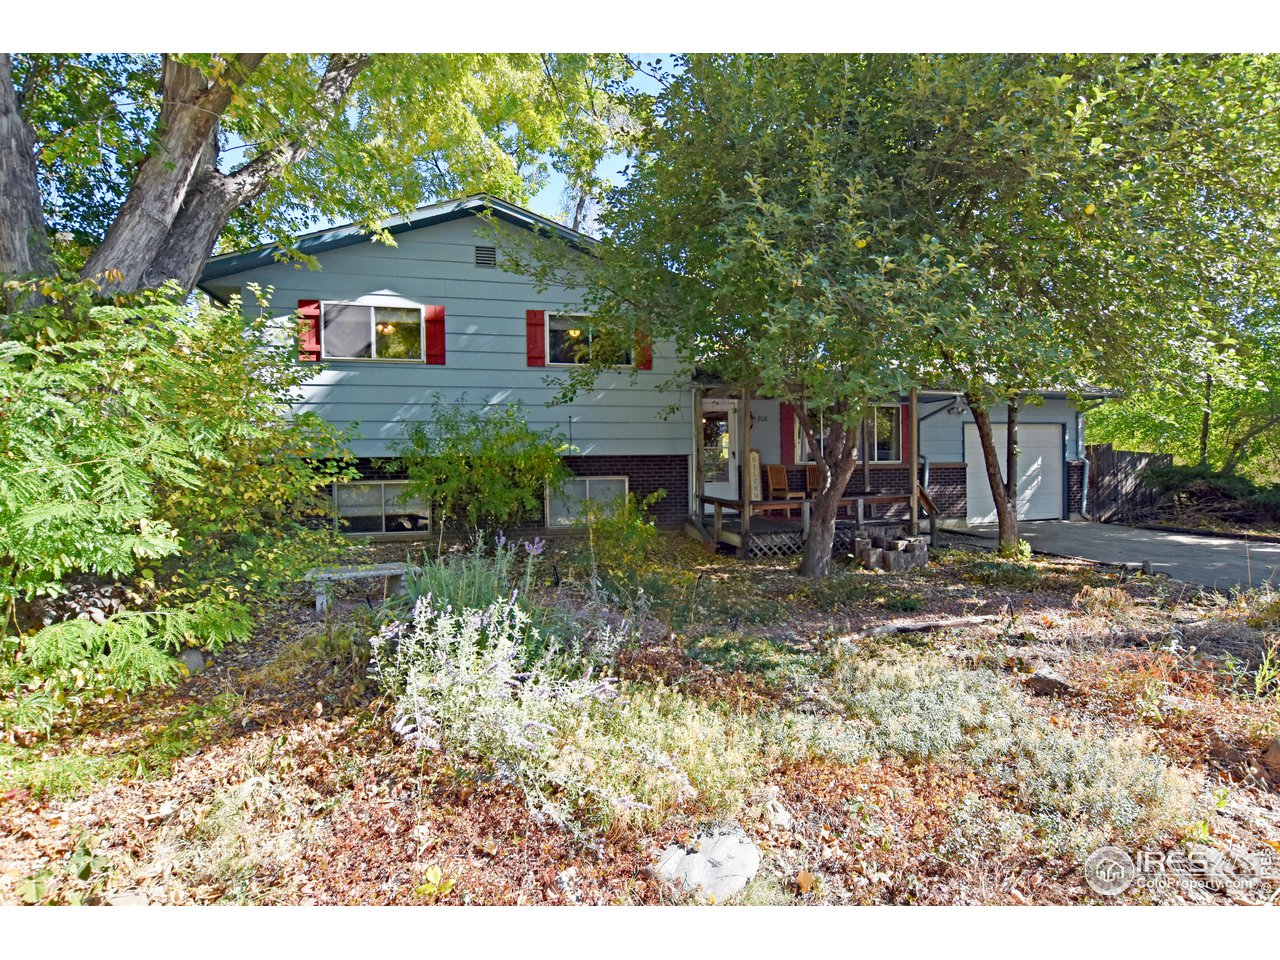 808 Timber Ln, Fort Collins CO 80521